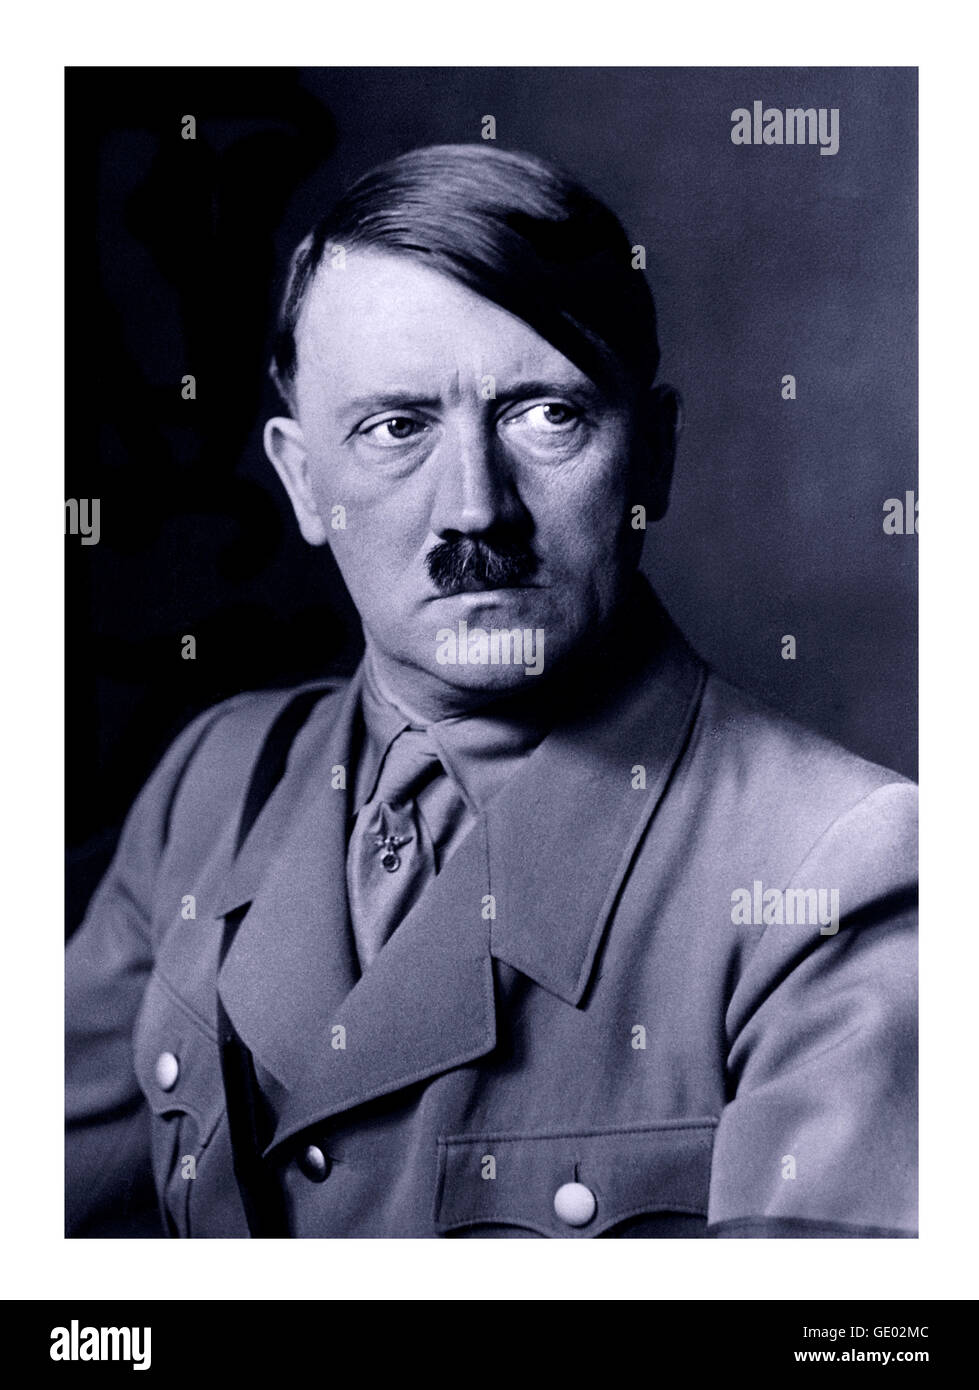 1930's formal B&W portrait of Adolf Hitler in uniform from which a renowned oil painting portrait was made - Stock Image